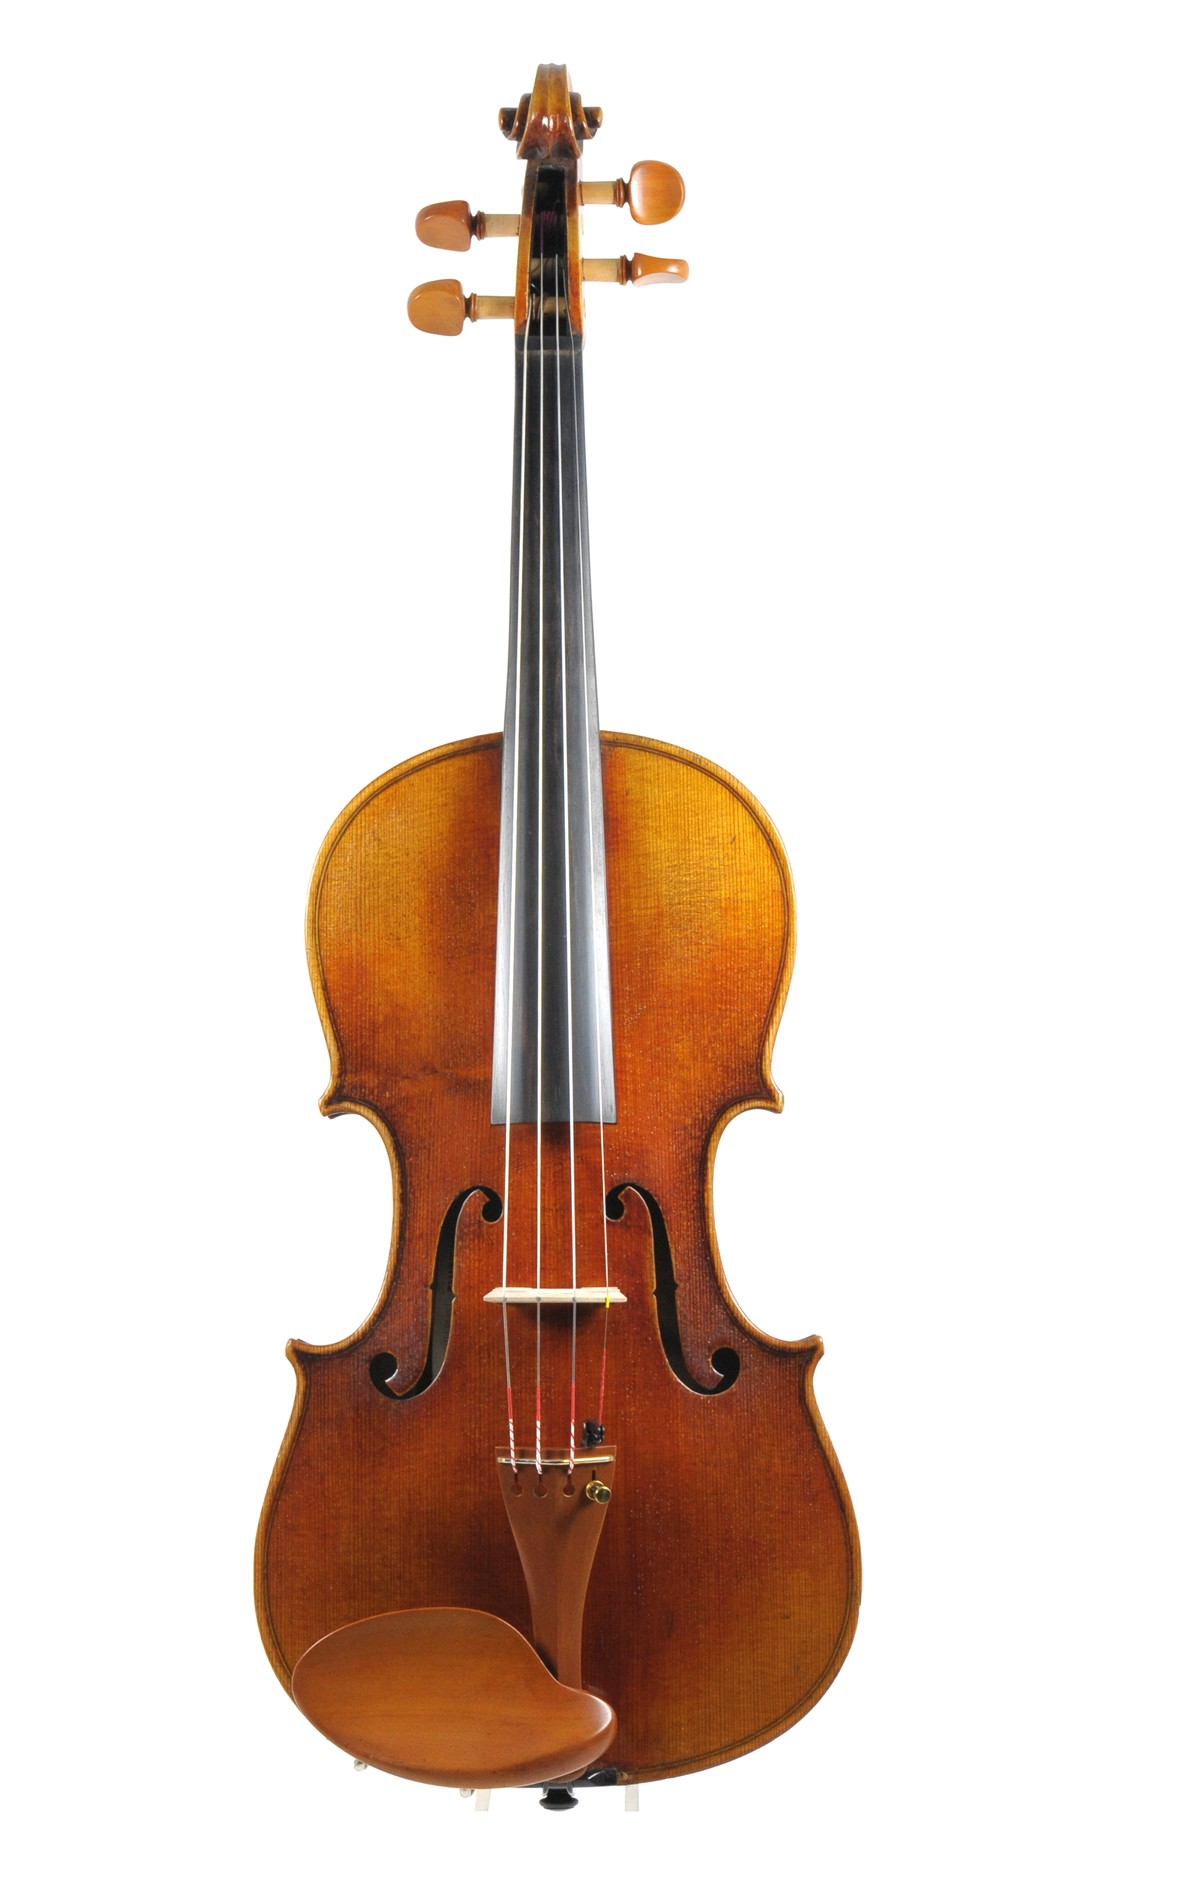 Willy Köstler violin, Graslitz